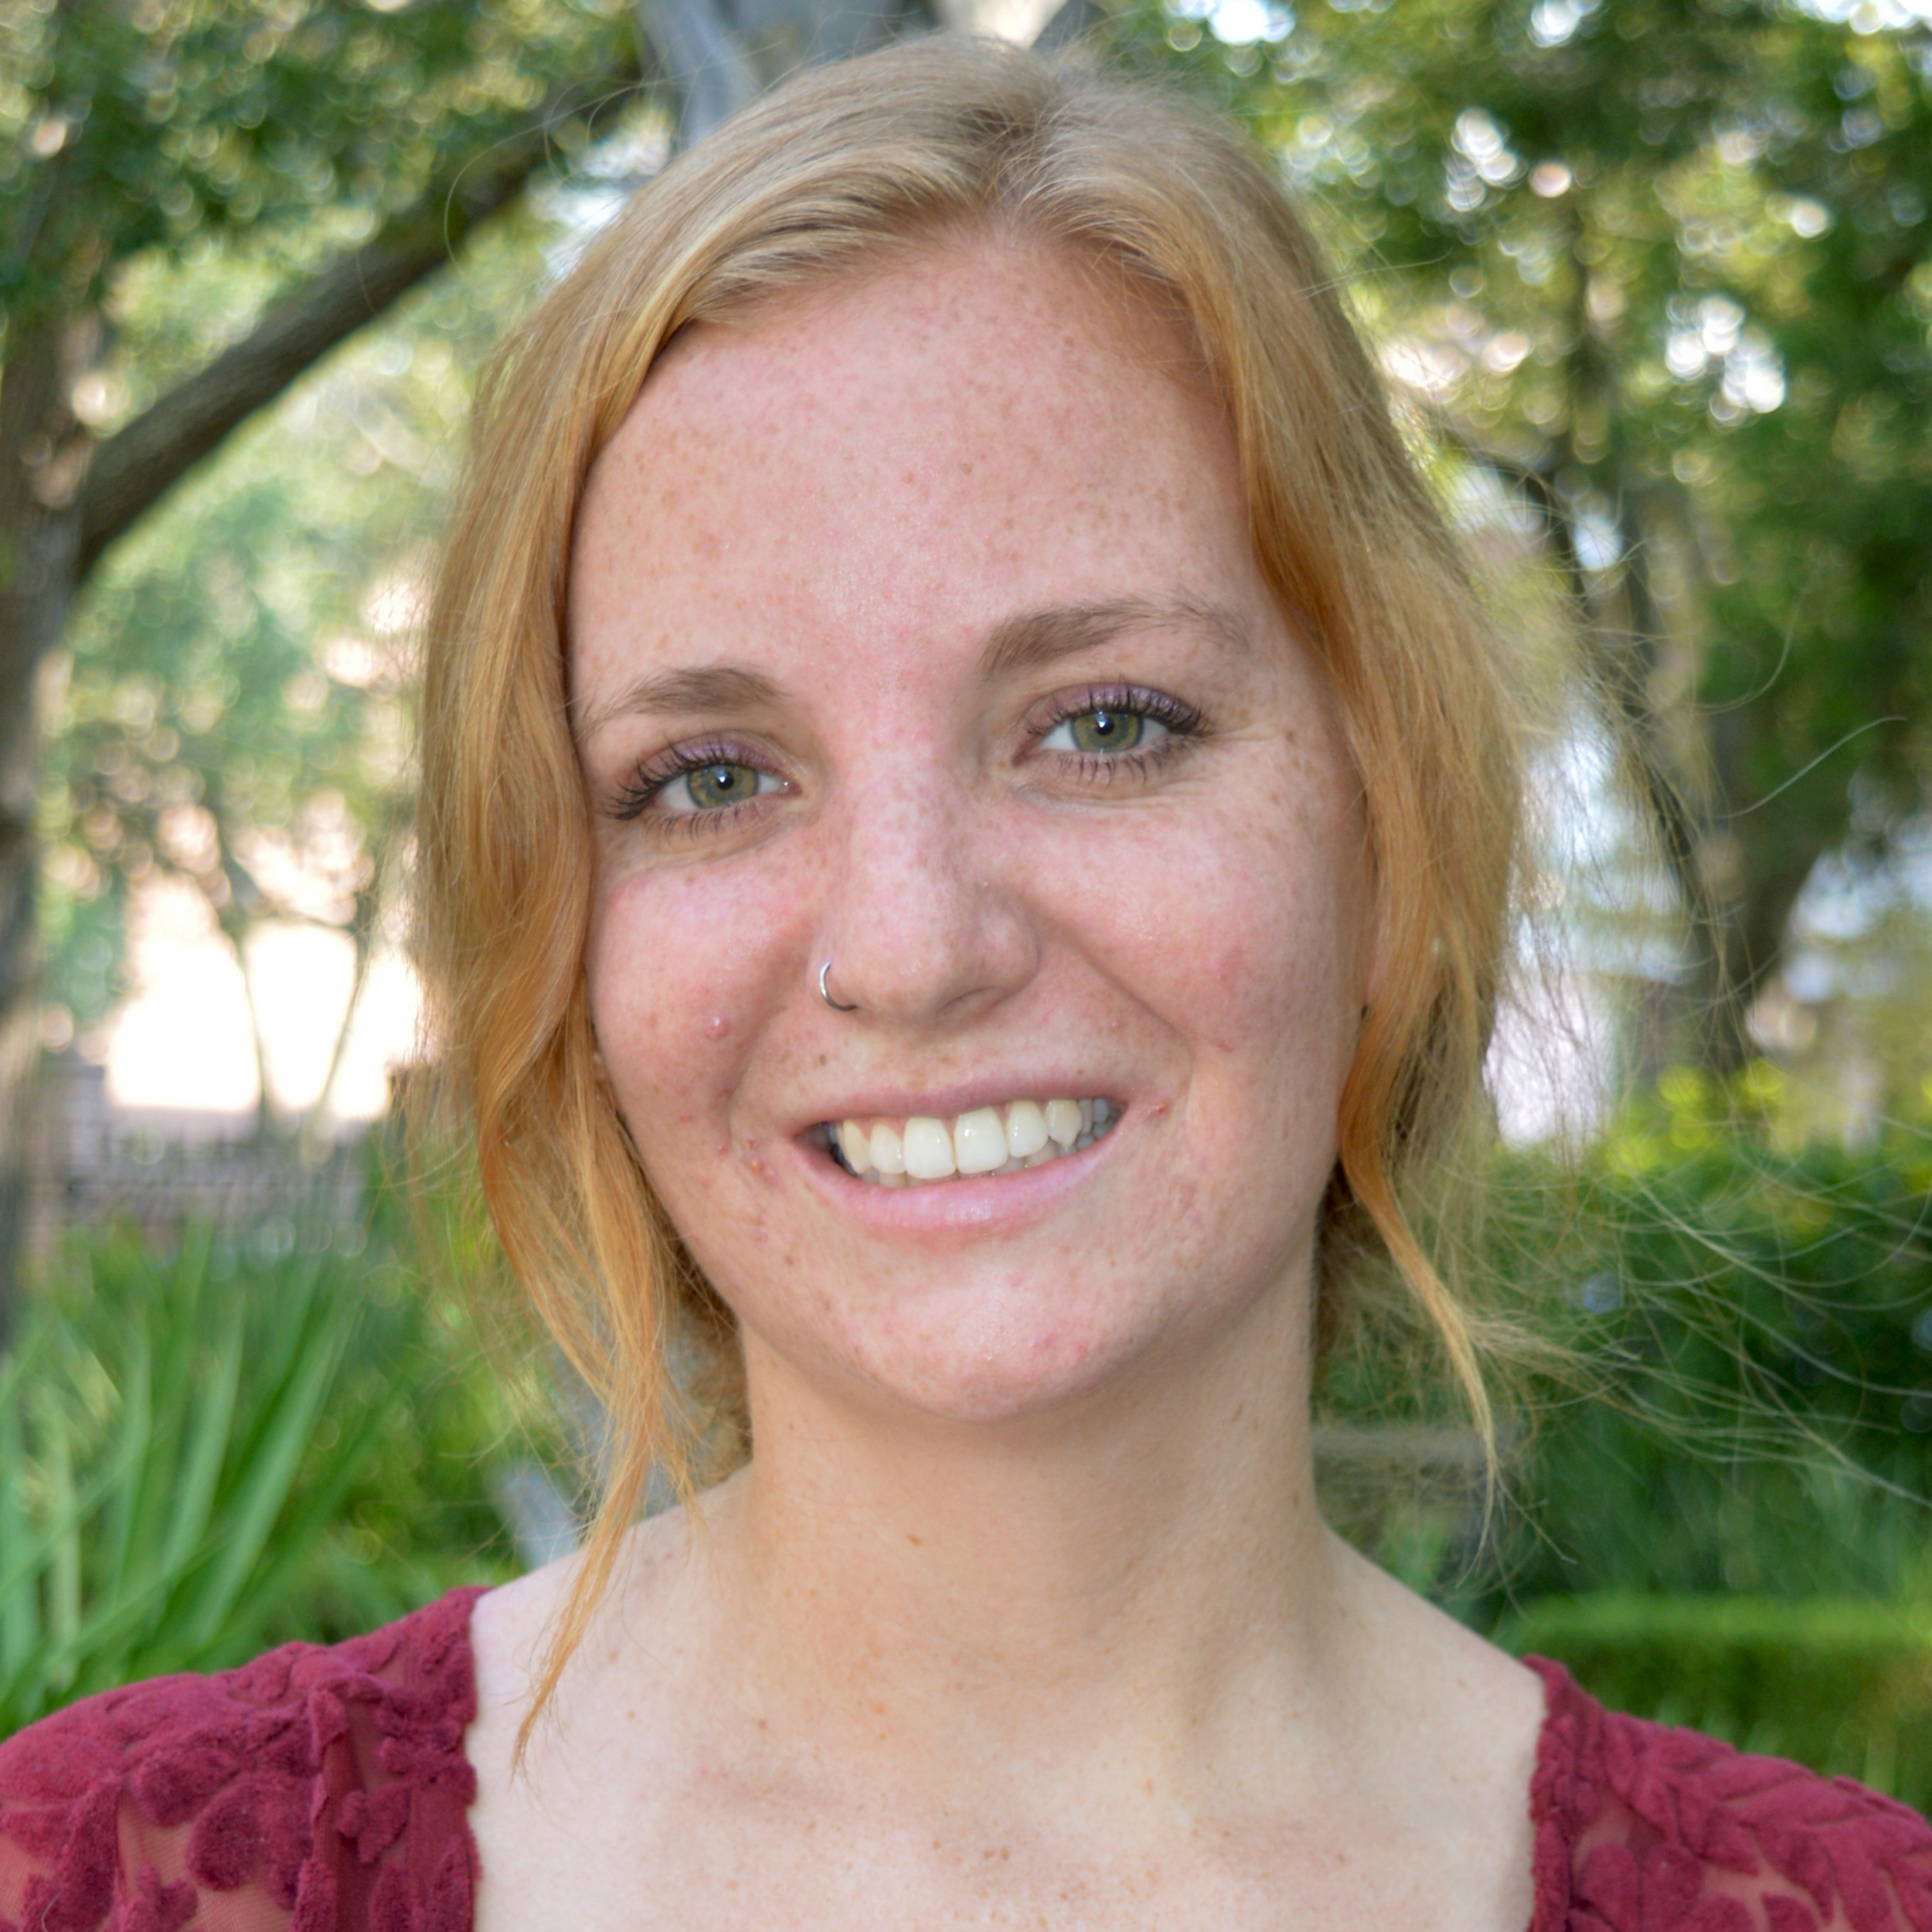 About the author - Aiken native Emma Berry is a recent graduate of the College of Charleston and works with SCDNR's marine division in Charleston on science communication and outreach.